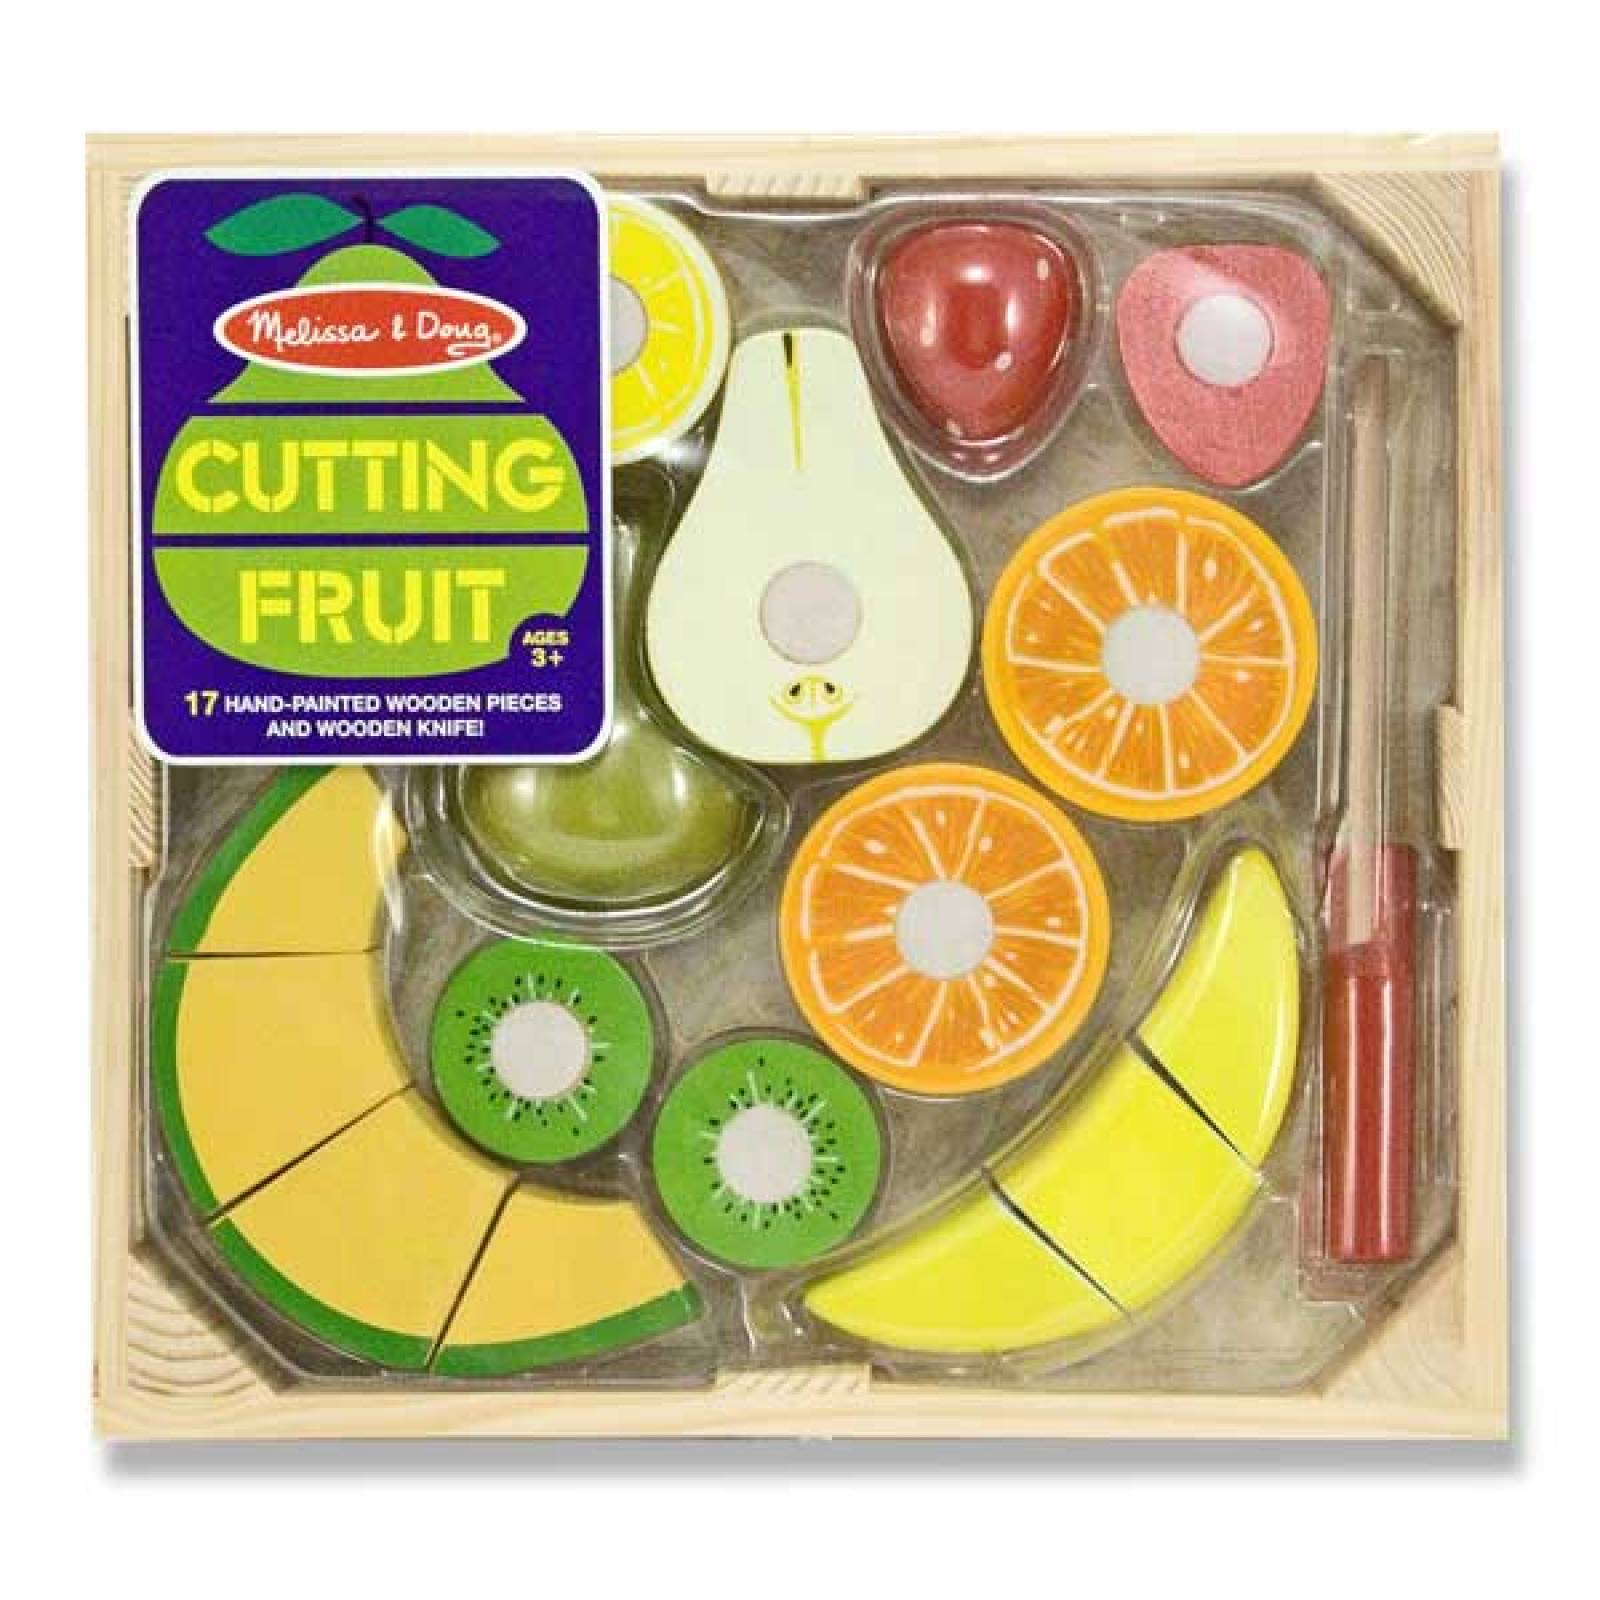 Wooden Cutting Fruit Set By Melissa & Doug 3+